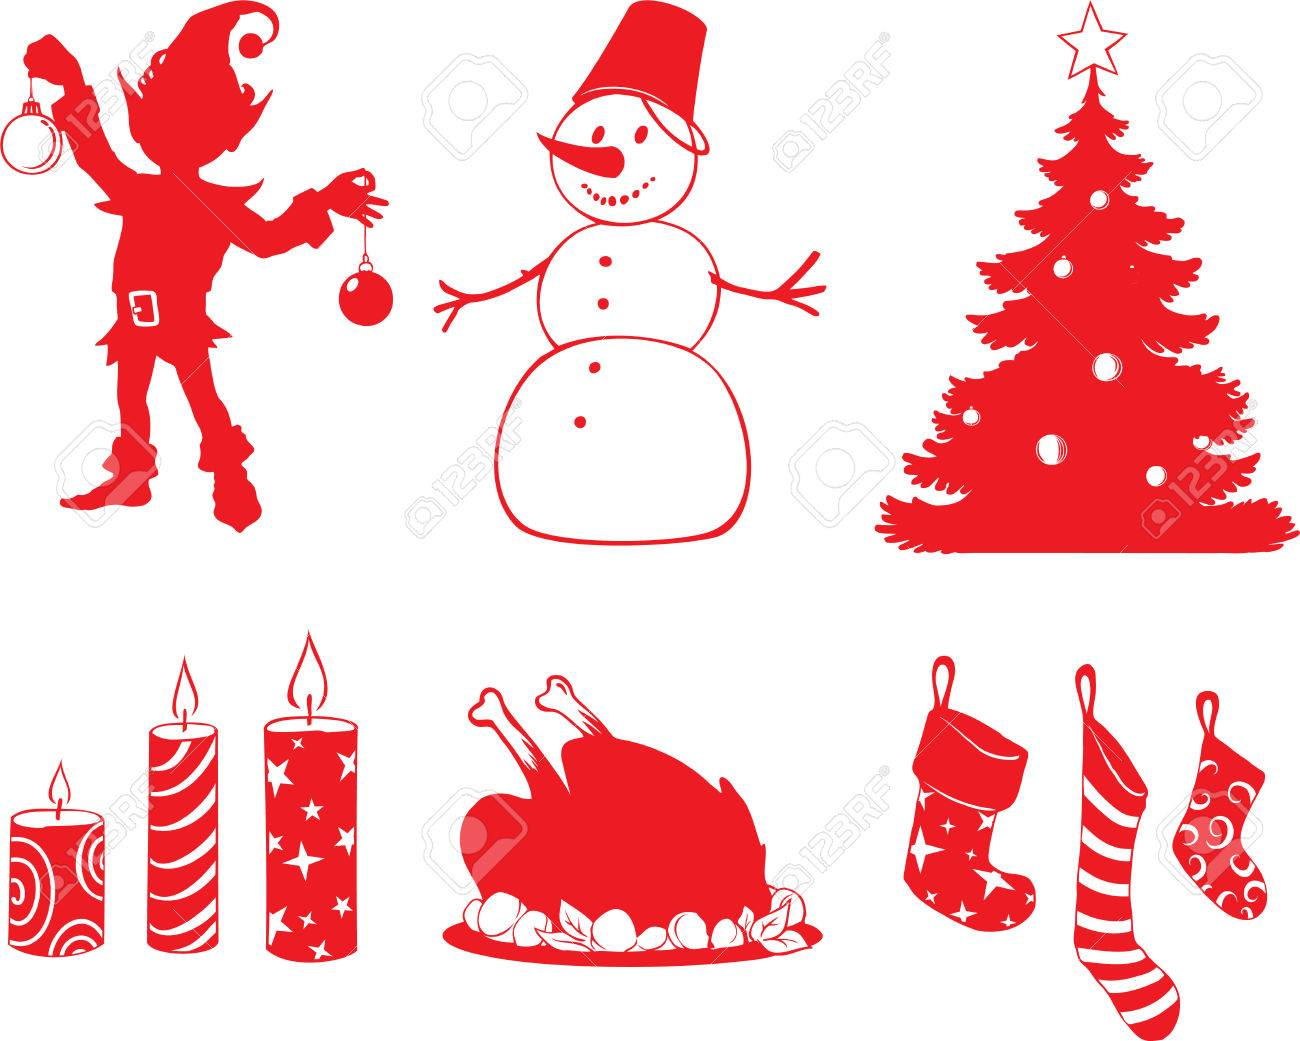 Christmas Shapes.Set Of Vector Christmas Shapes In Cartoon Style